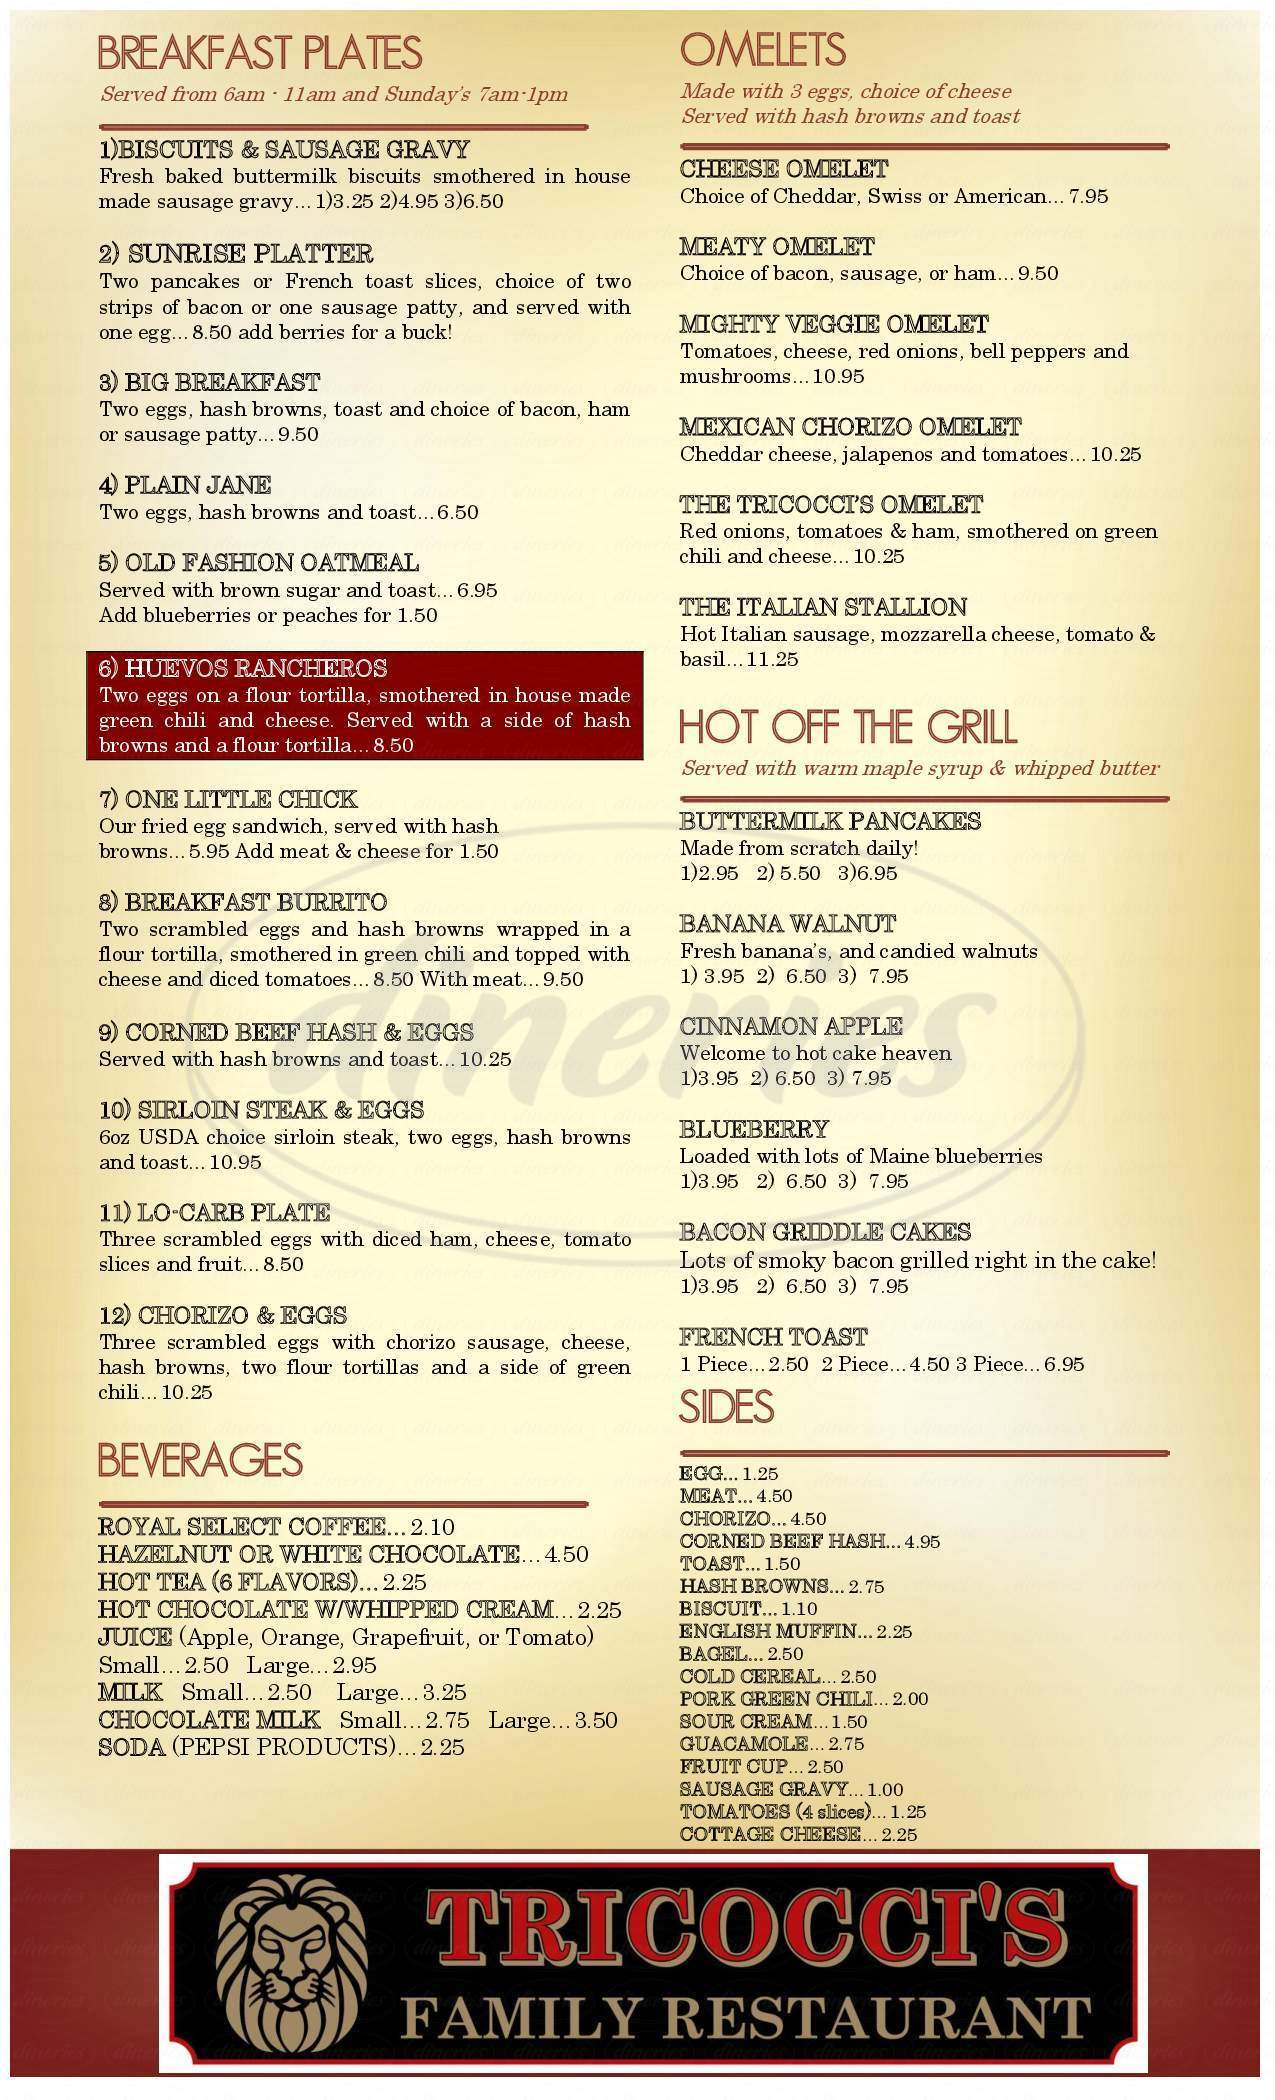 menu for Tricocci's Family Restaurant